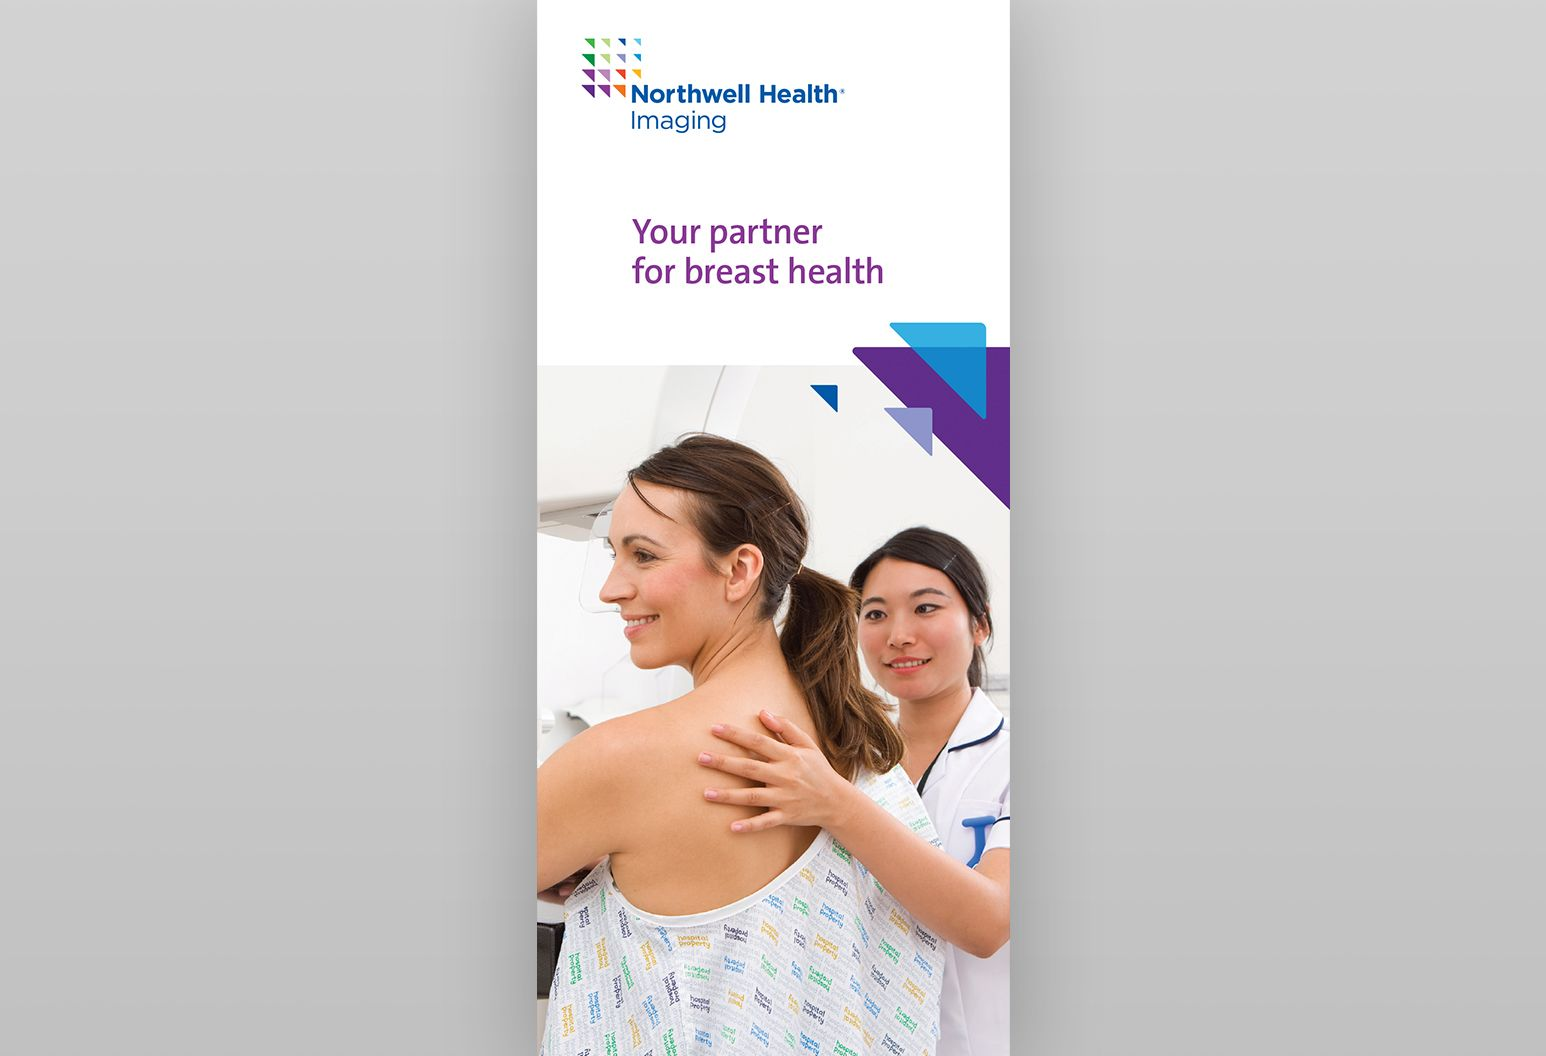 Cover of the brochure to learn more about breast health at Northwell Health.